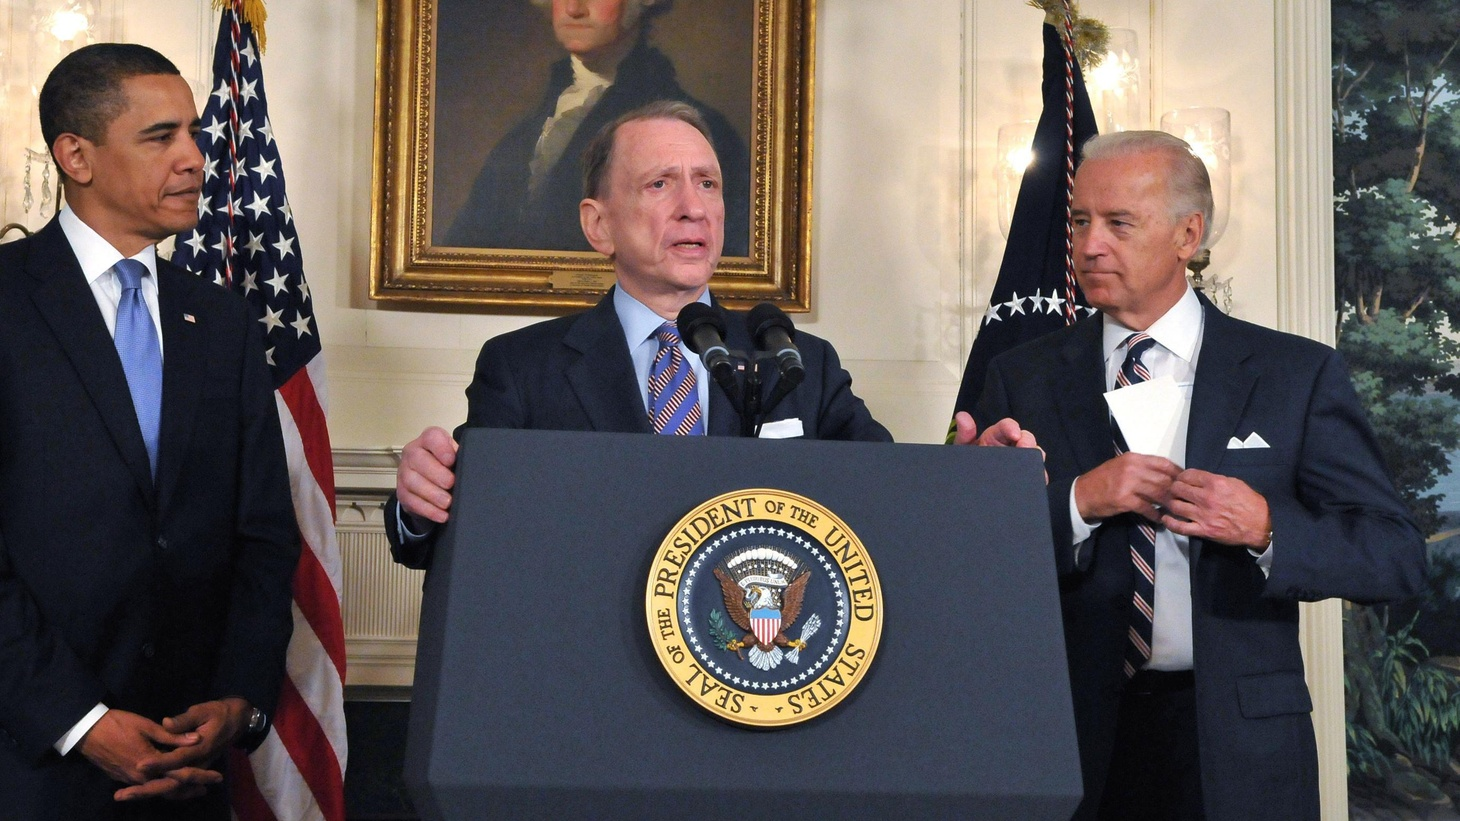 On his hundredth day, President Obama thanked Pennsylvania Senator Arlen Specter for switching parties. Will Specter be a better Democrat than he was a Republican? Has the GOP gone so far right that it can't appeal to the centrists and independents who decide most elections? Also, vaccines and variations in the Swine Flu outbreak, and melting ice and international politics in the Arctic.